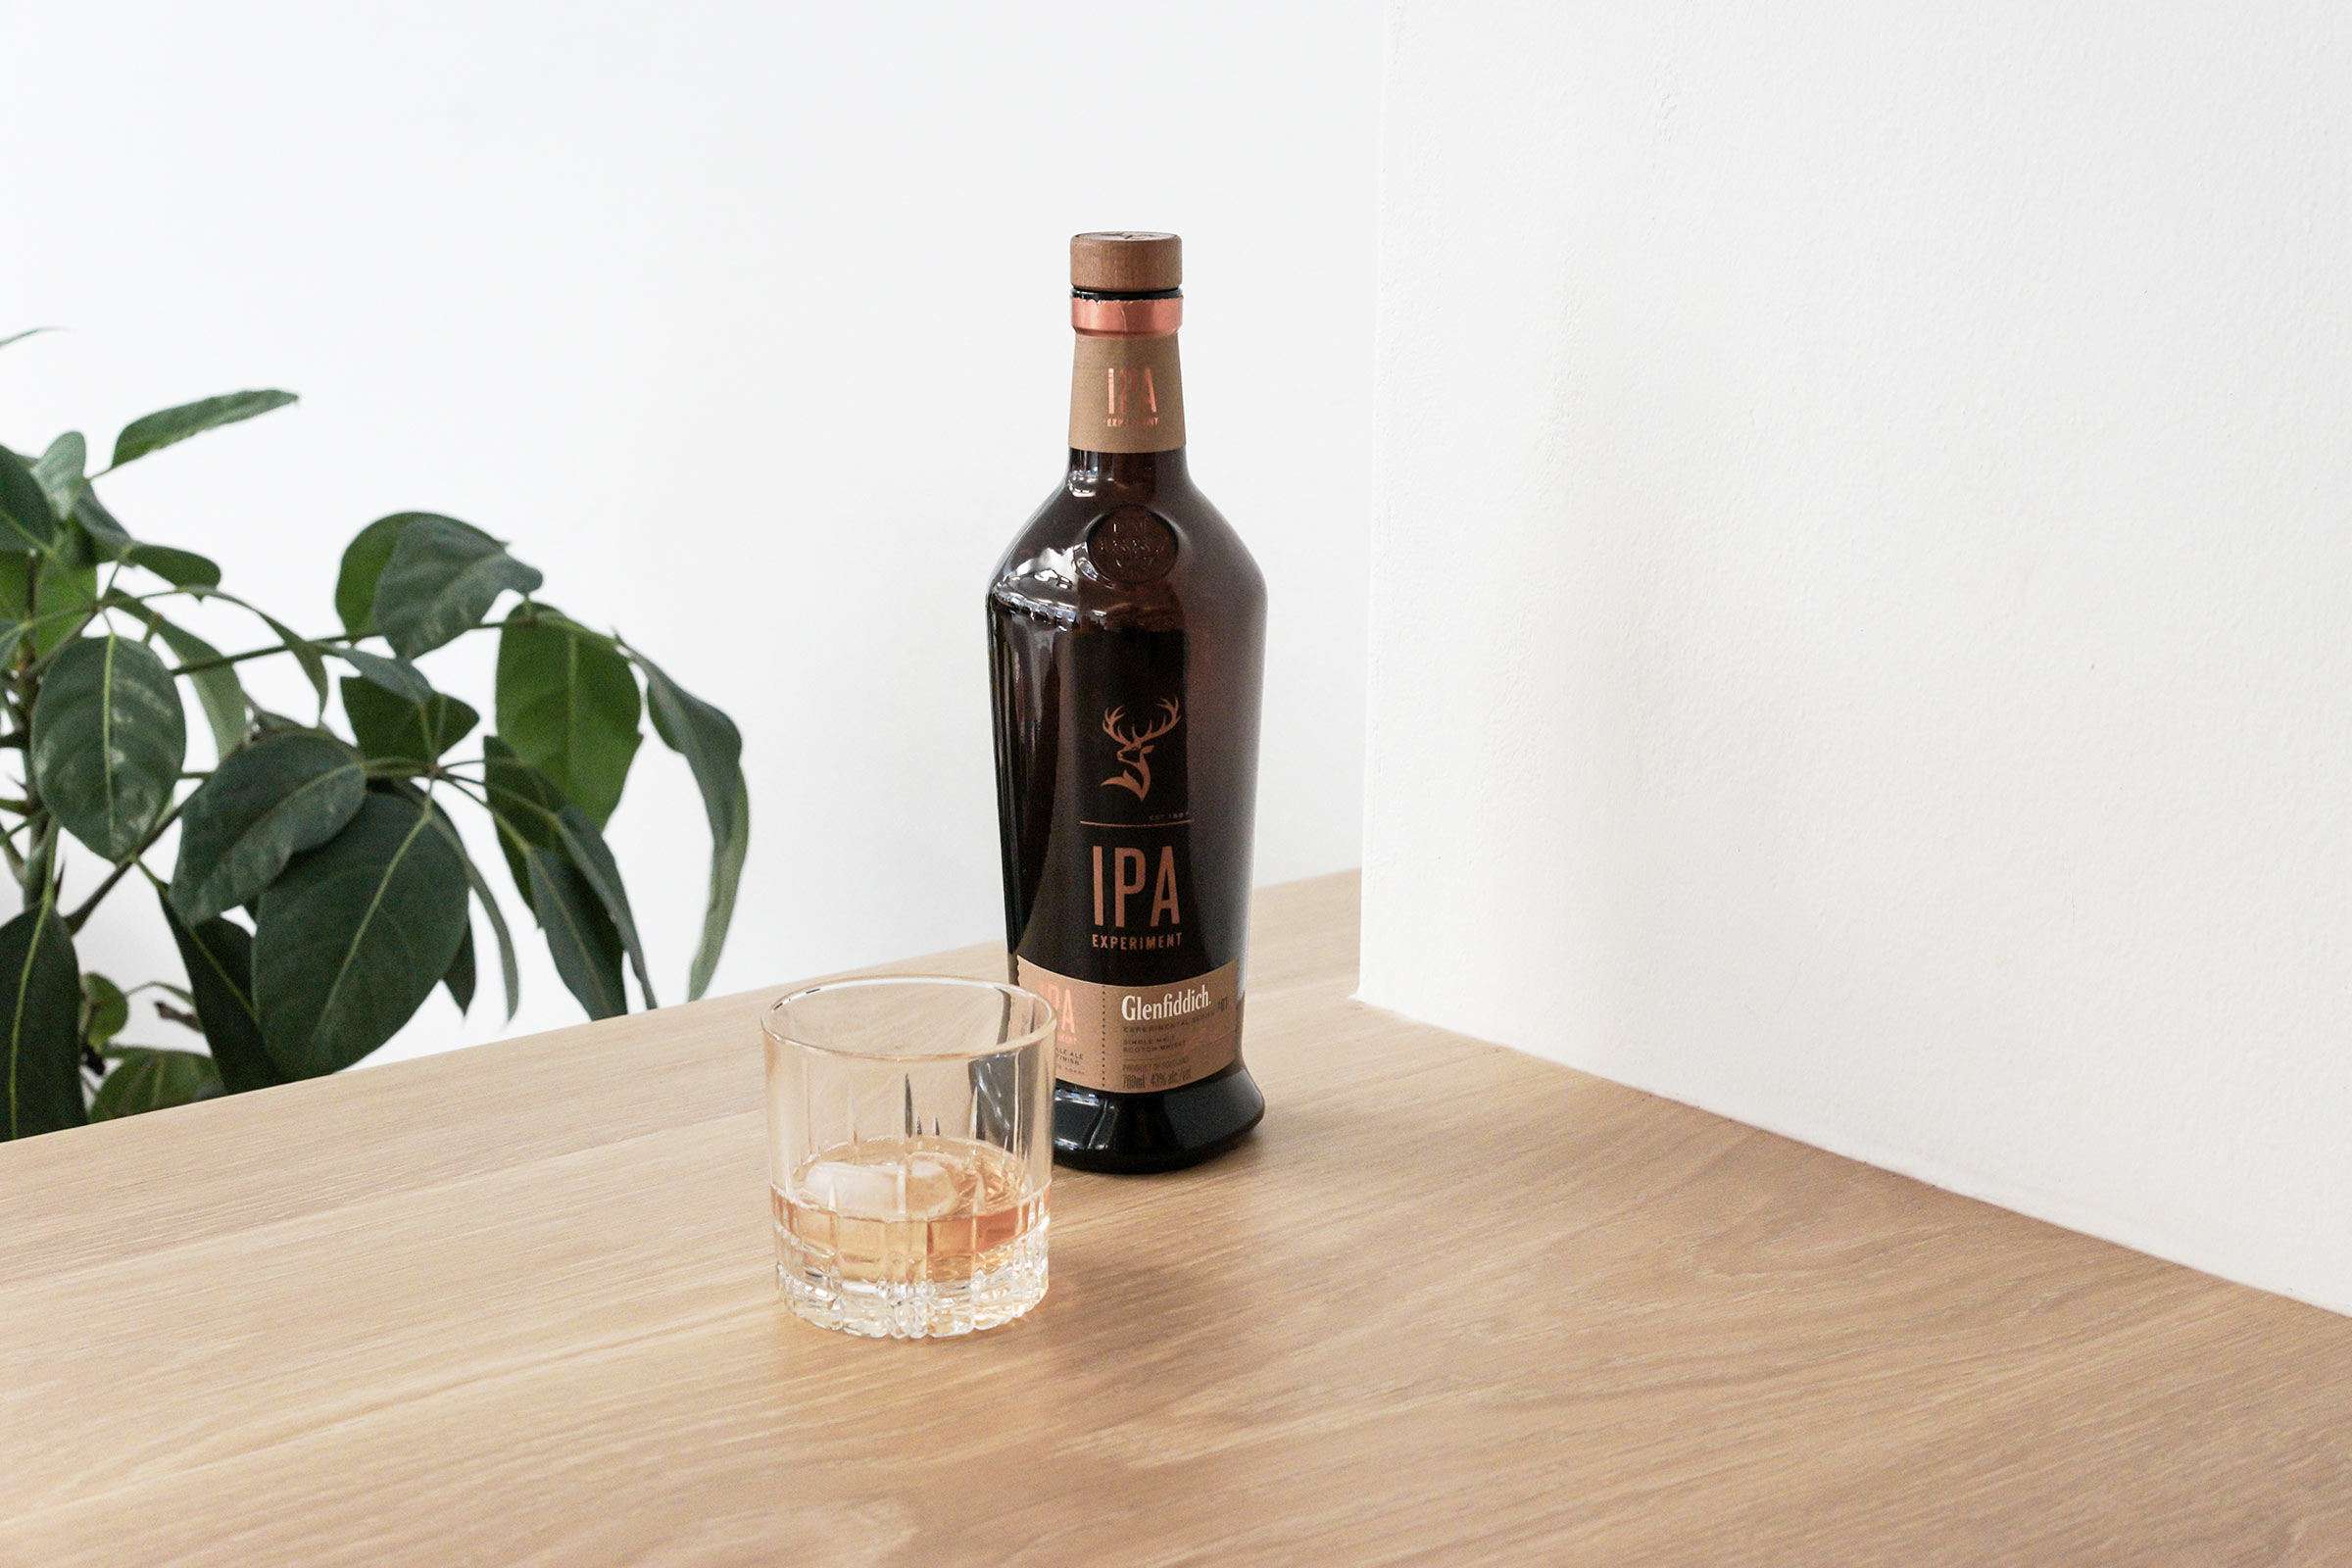 2018 FATHER'S DAY GIFT GUIDE - GLENFIDDICH